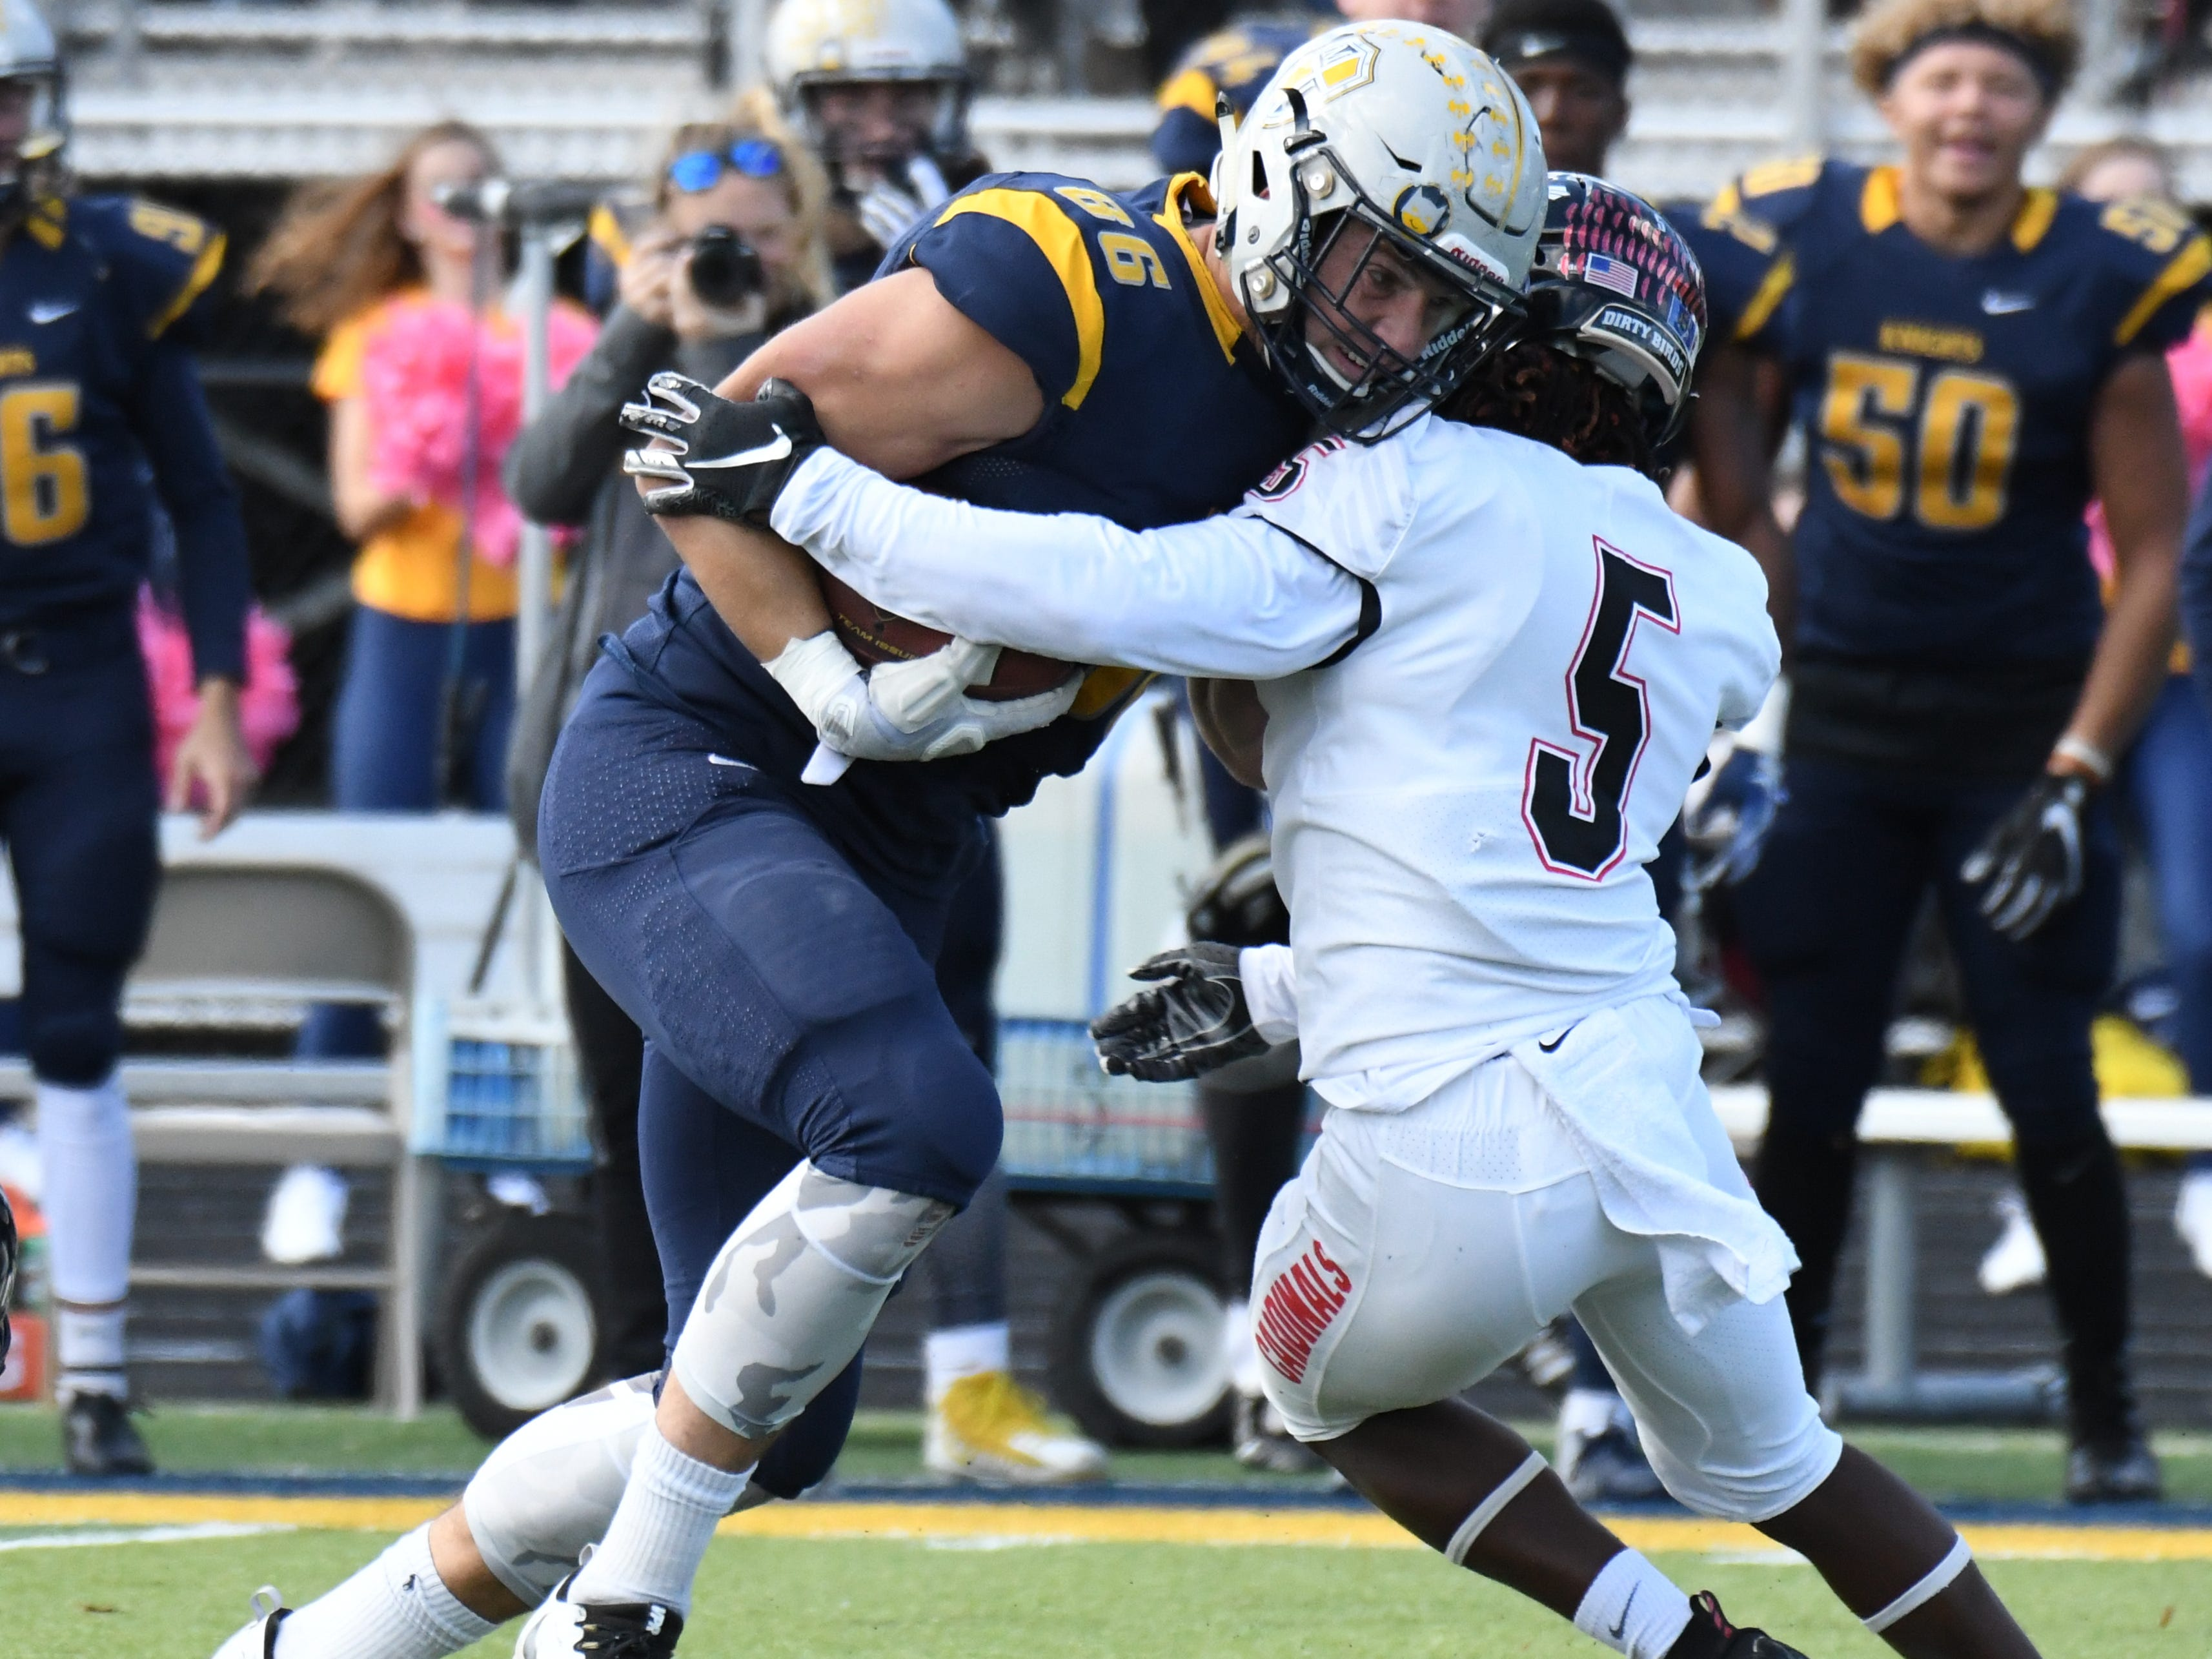 Marian University tight end Brandon Dillon powers through a would-be tackler.